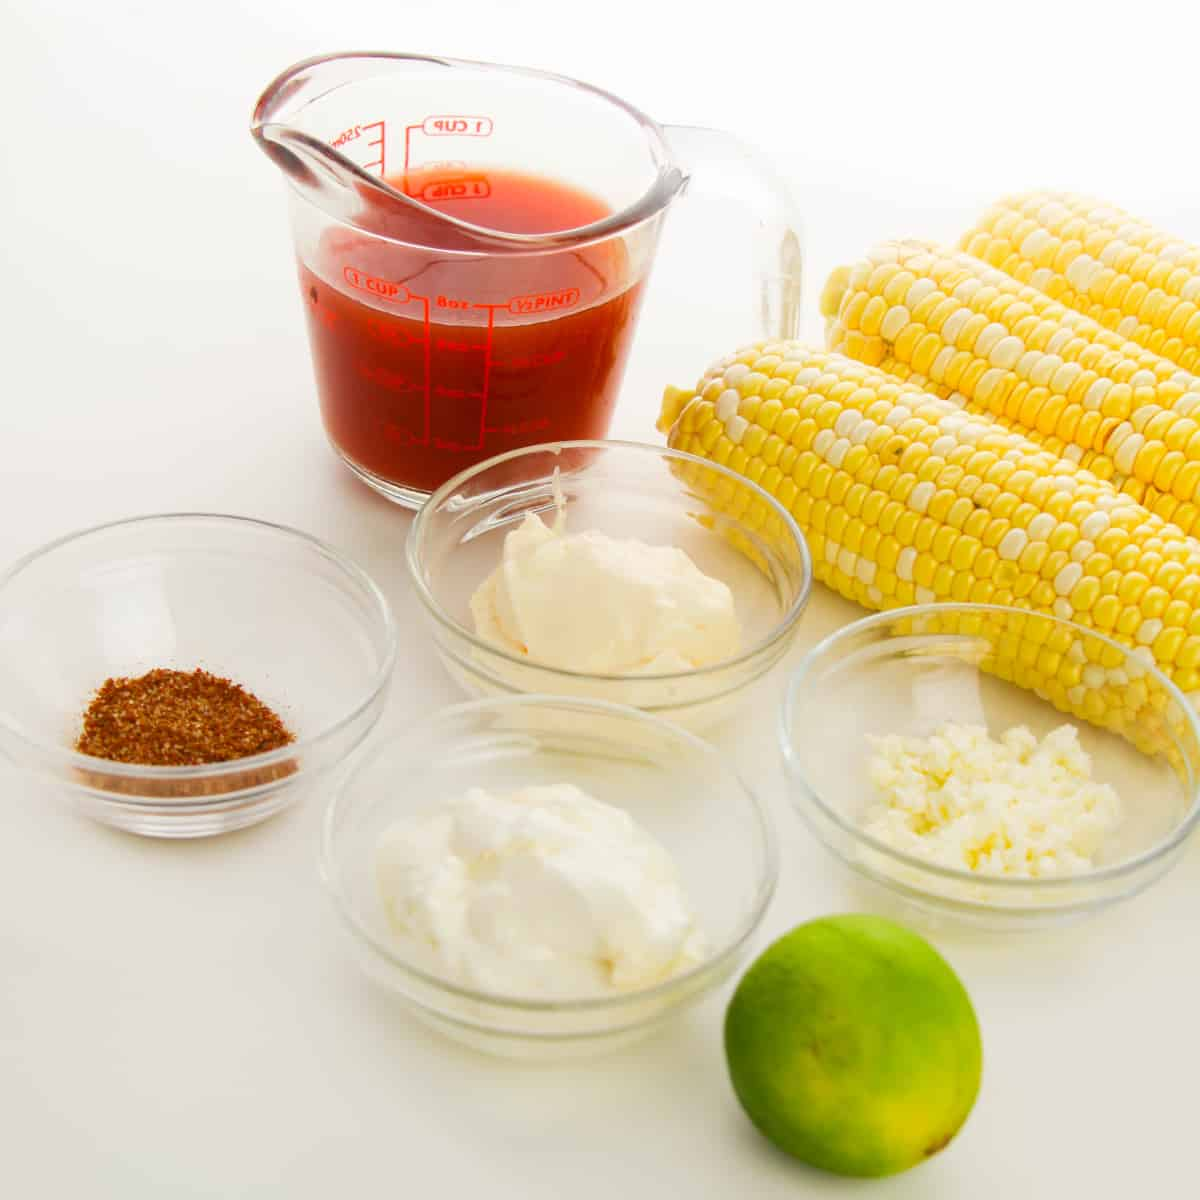 ingredients for corn fries on a white work surface